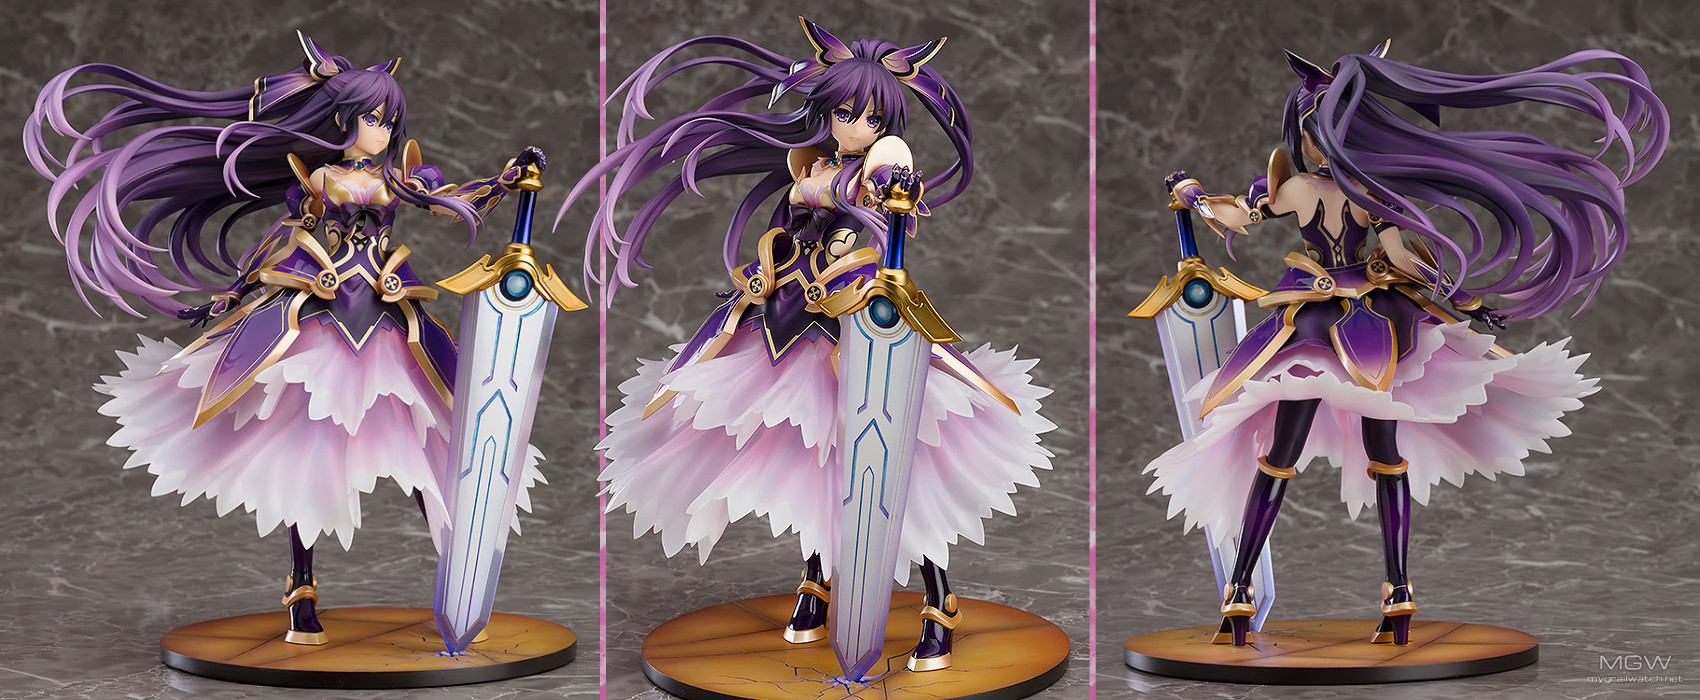 Tohka Yatogami by Good Smile Company from Date A Live